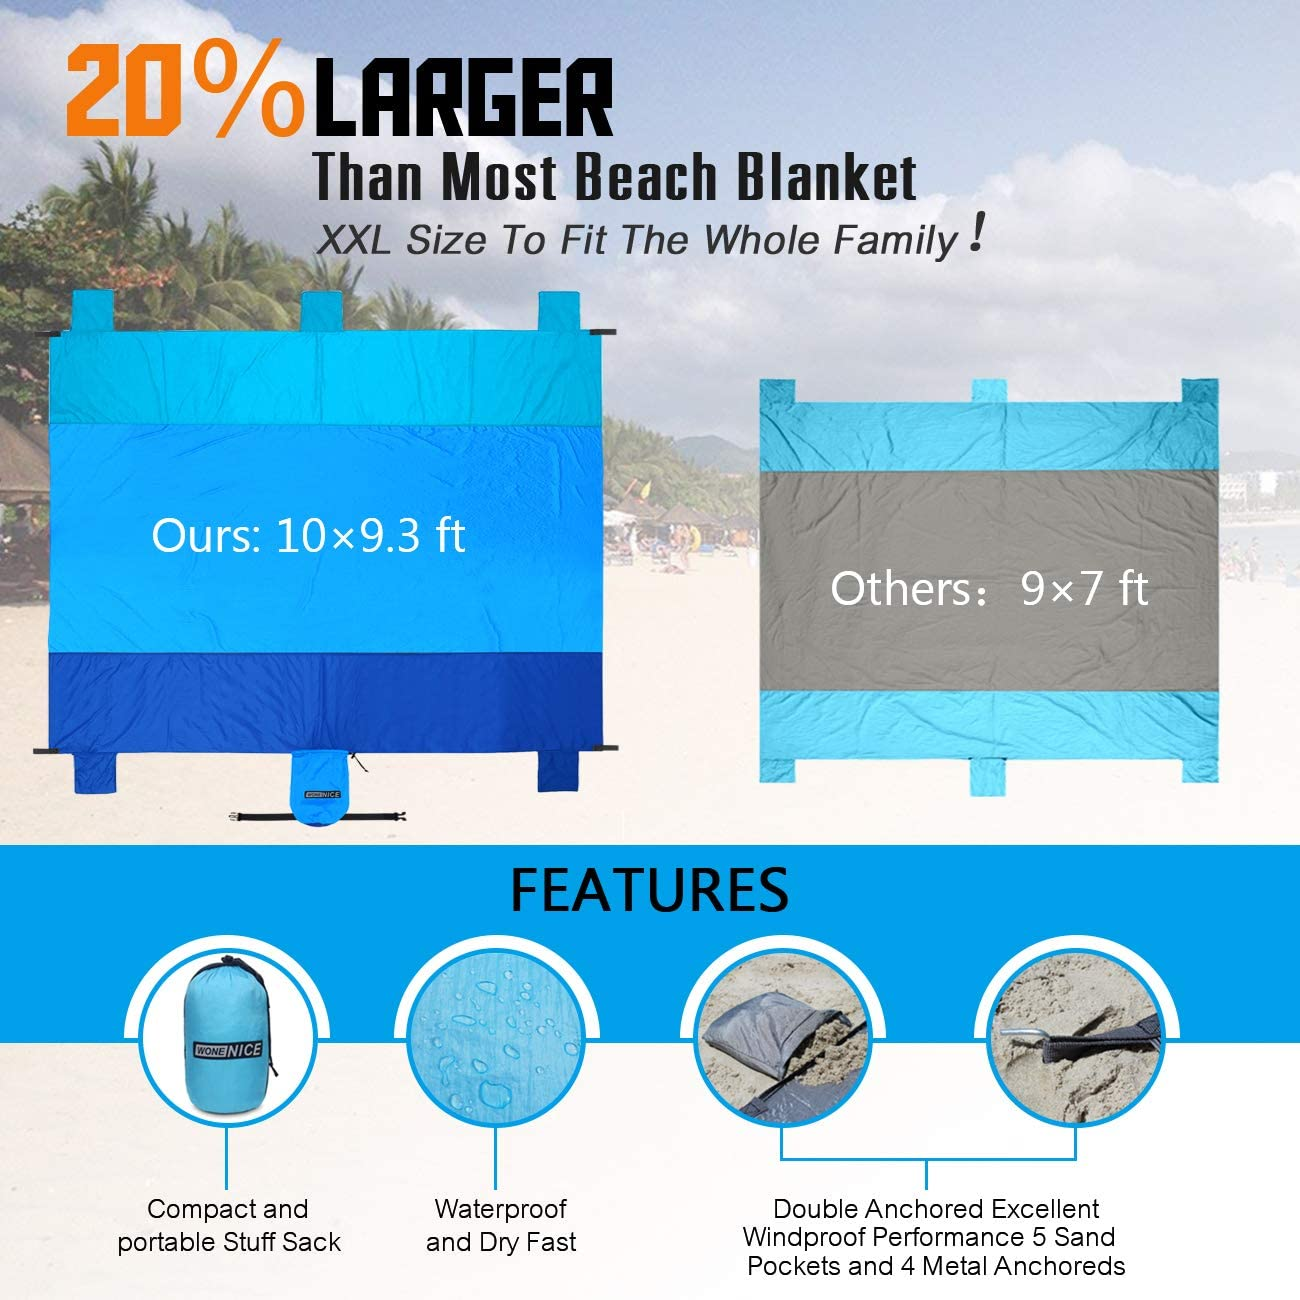 WoneNice Sand Proof Beach Blanket 10 x 9 Extra Large Sand Free Beach Blanket for 7 Adults Lightweight /& Waterproof and Quick-Dry with 6 Corner Pockets